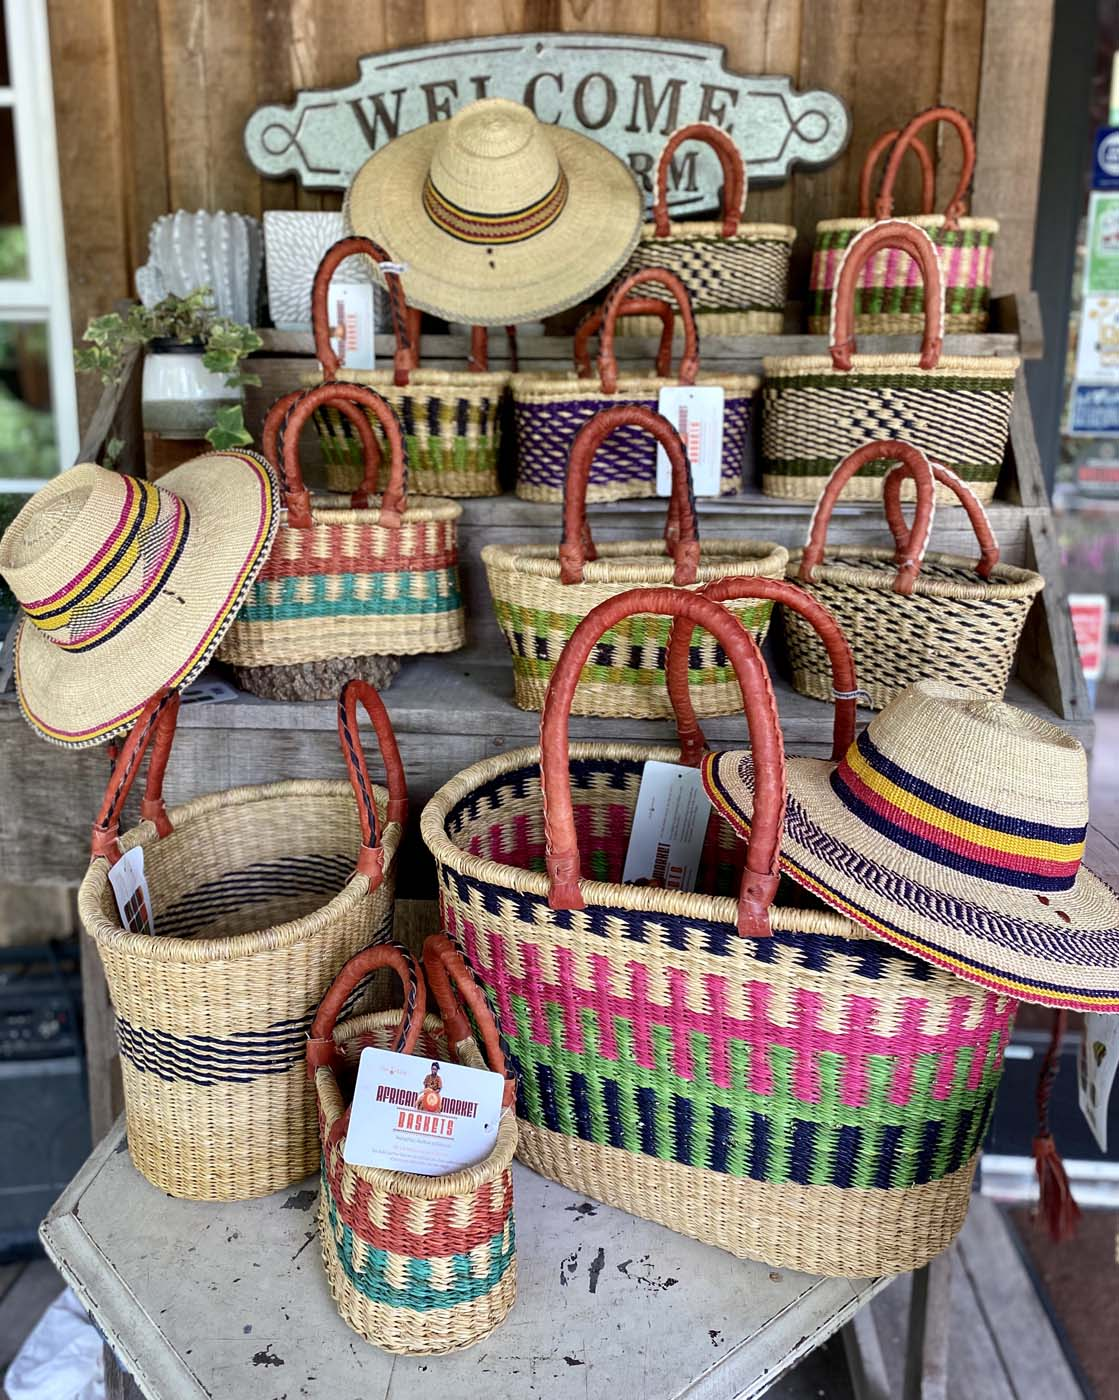 Baskets adapt to any type of display